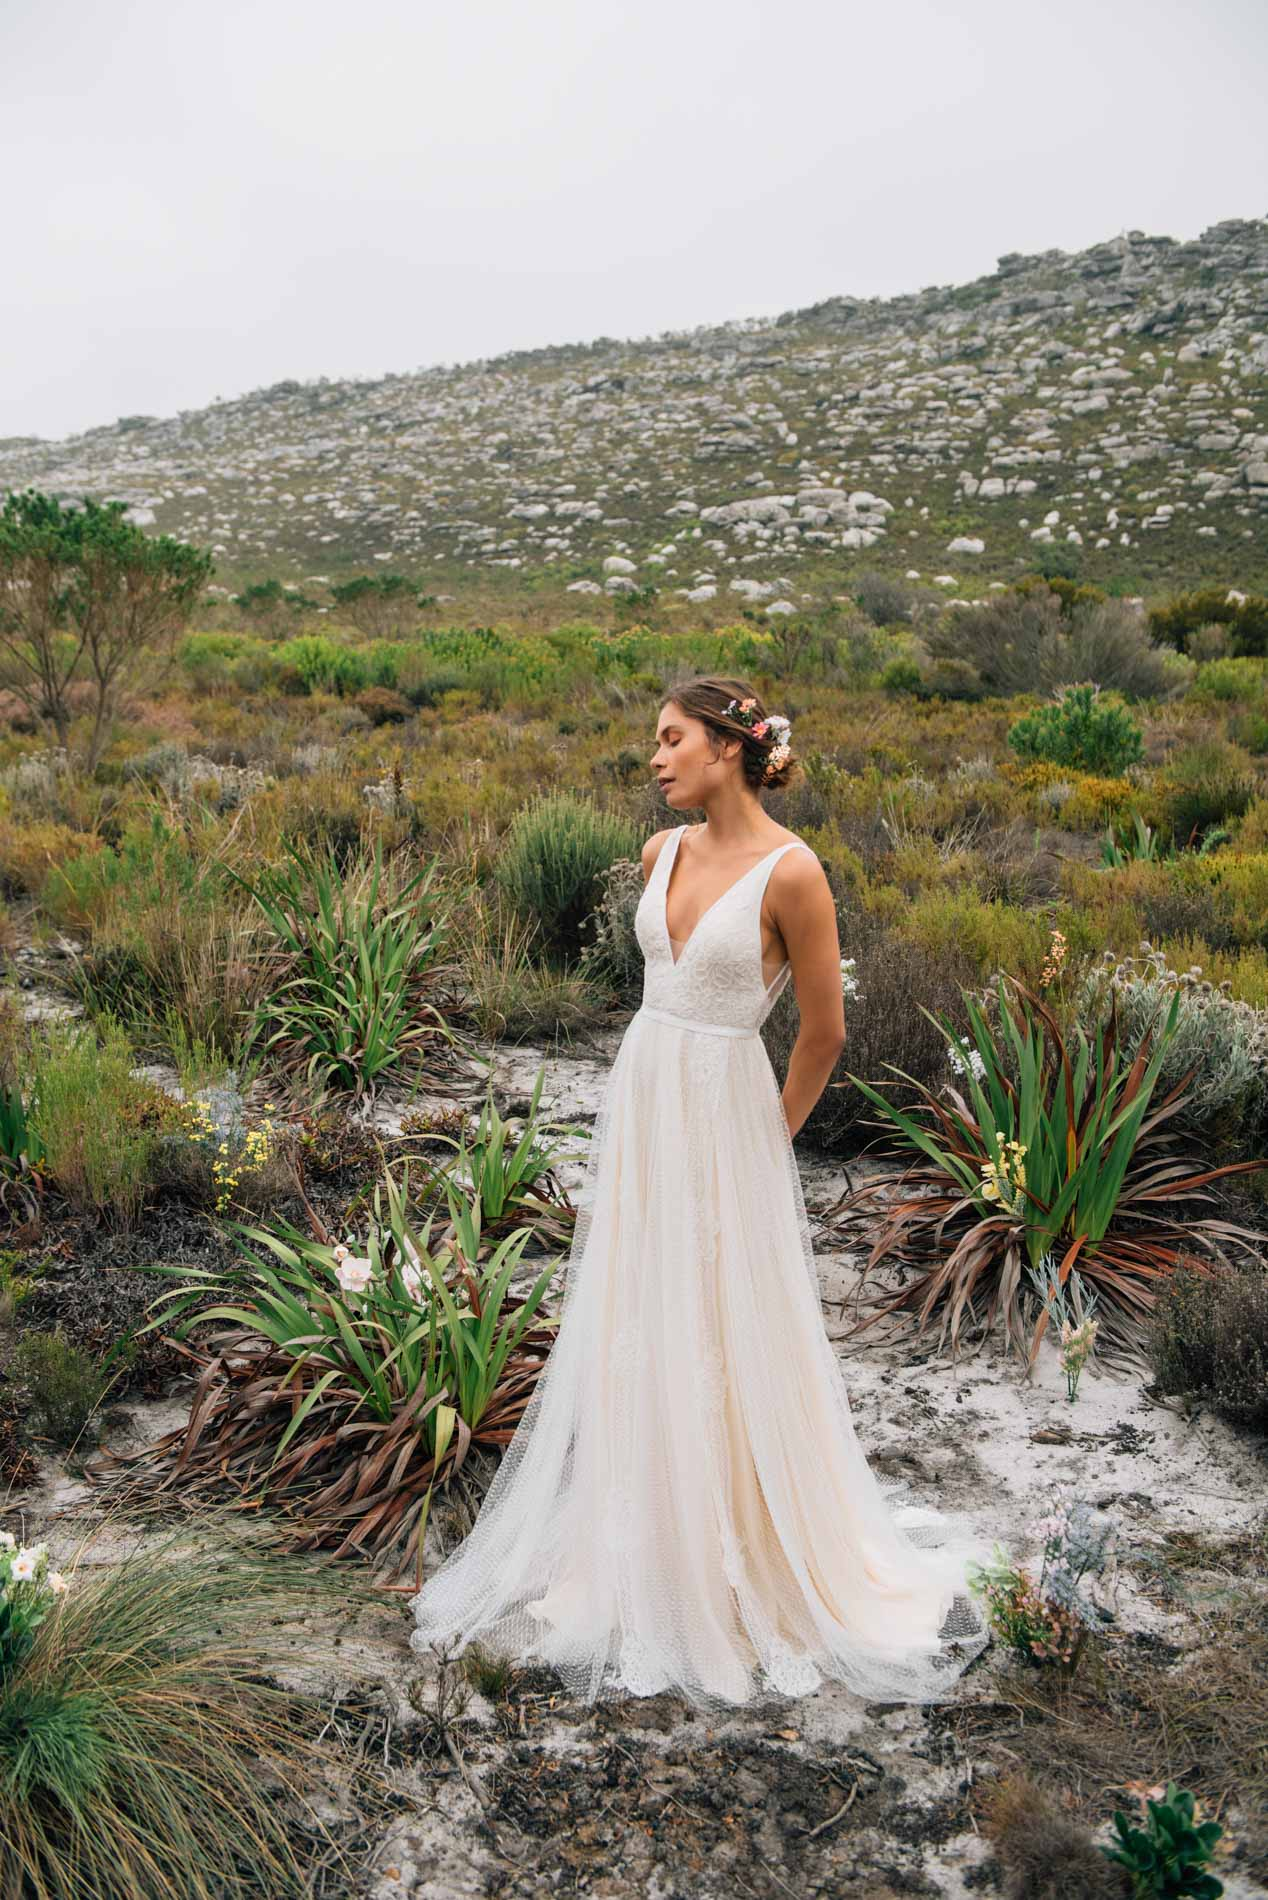 Nara by Catherine Deane Exclusive bridal event, Hannah Elizabeth Bridal, Botley. Hosting outstanding events for Hampshire Brides